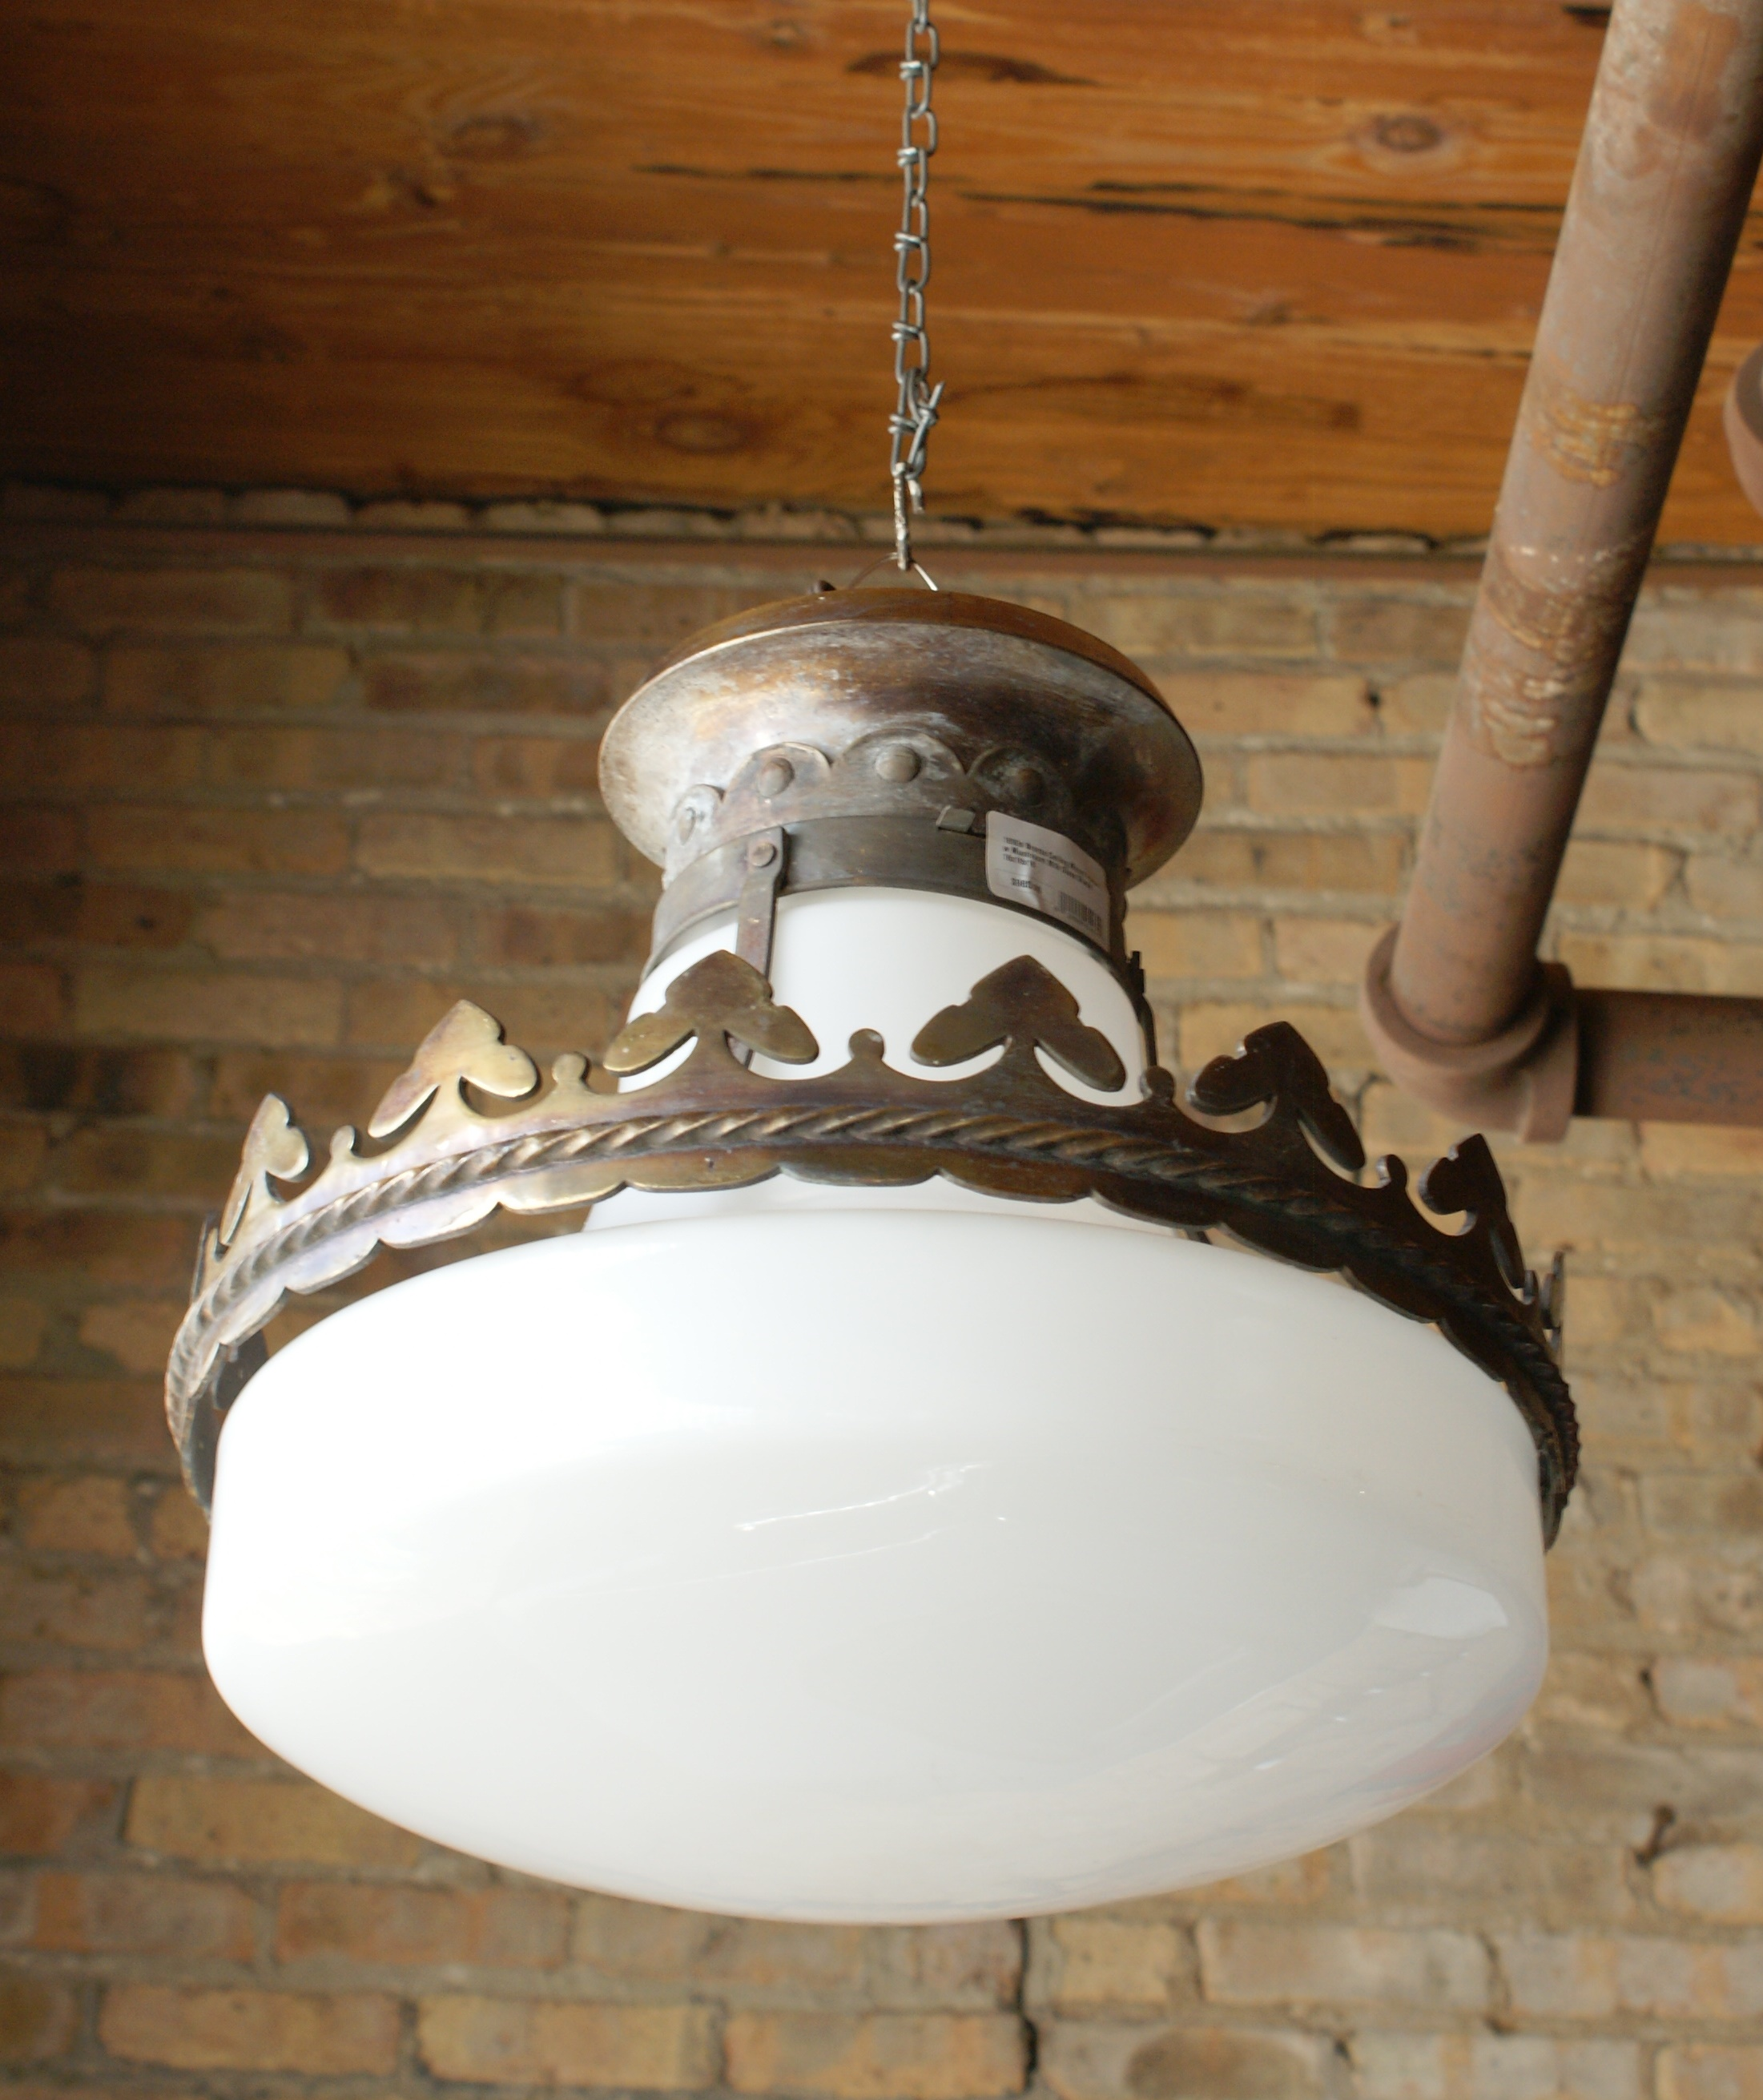 Home lighting hanging 1890s bronze ceiling mount fixture w mushroom milk glass shade